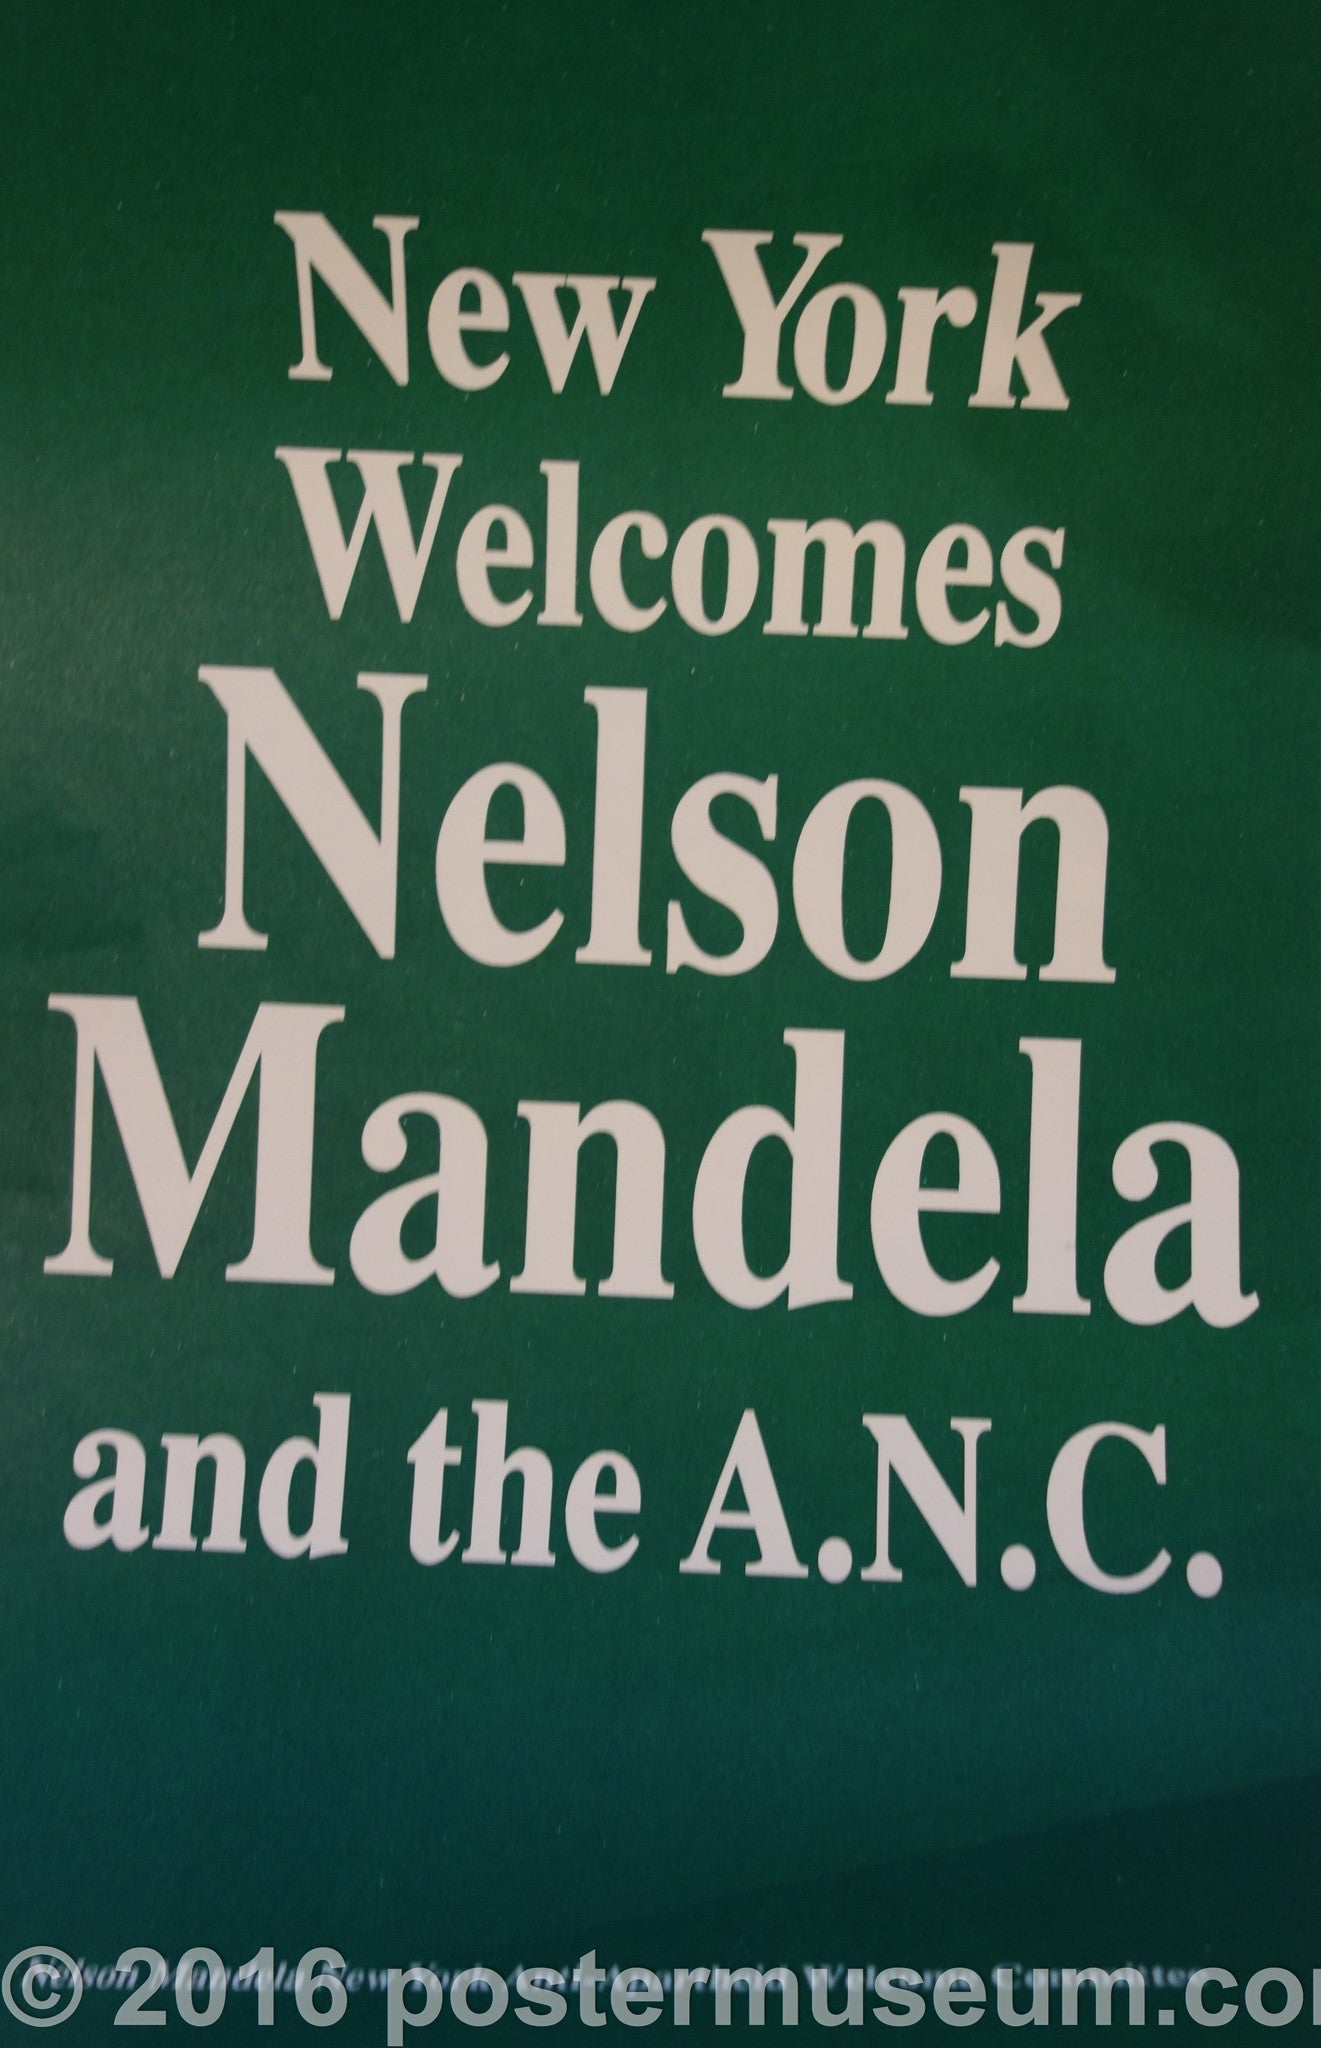 New York Welcomes Nelson Mandela And The A.N.C.